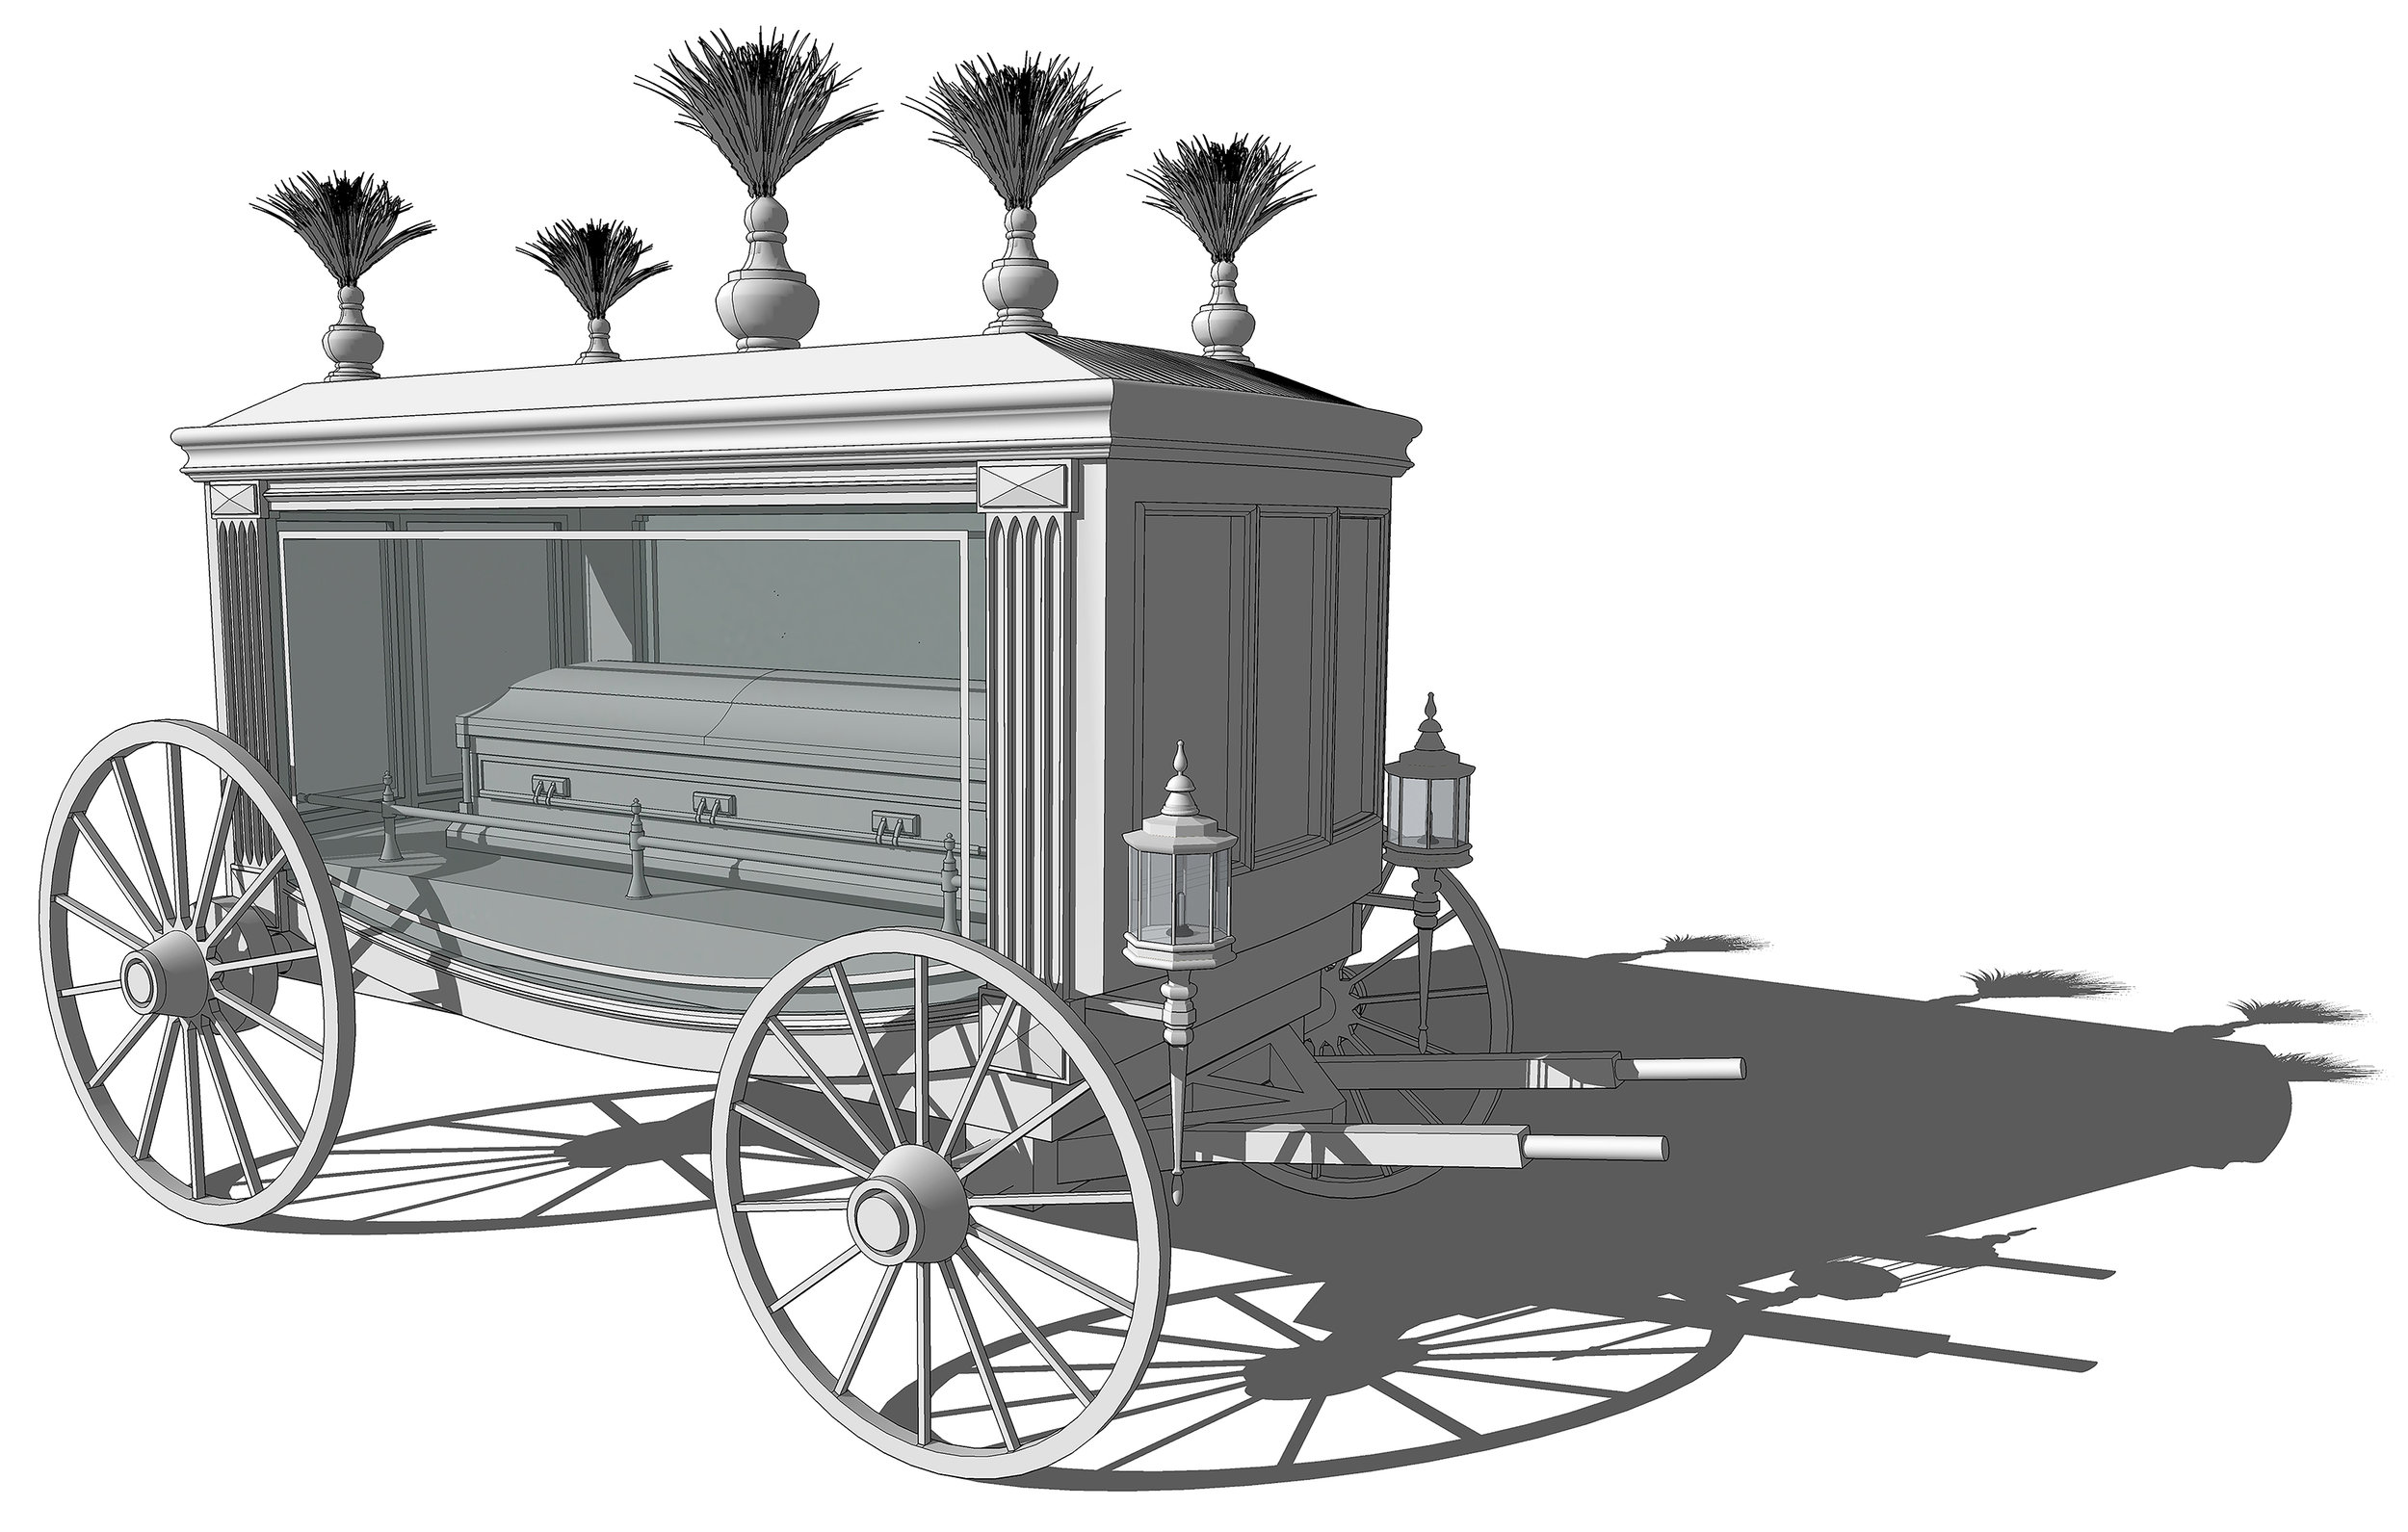 FUNERAL CARRIAGE - SketchUp Model